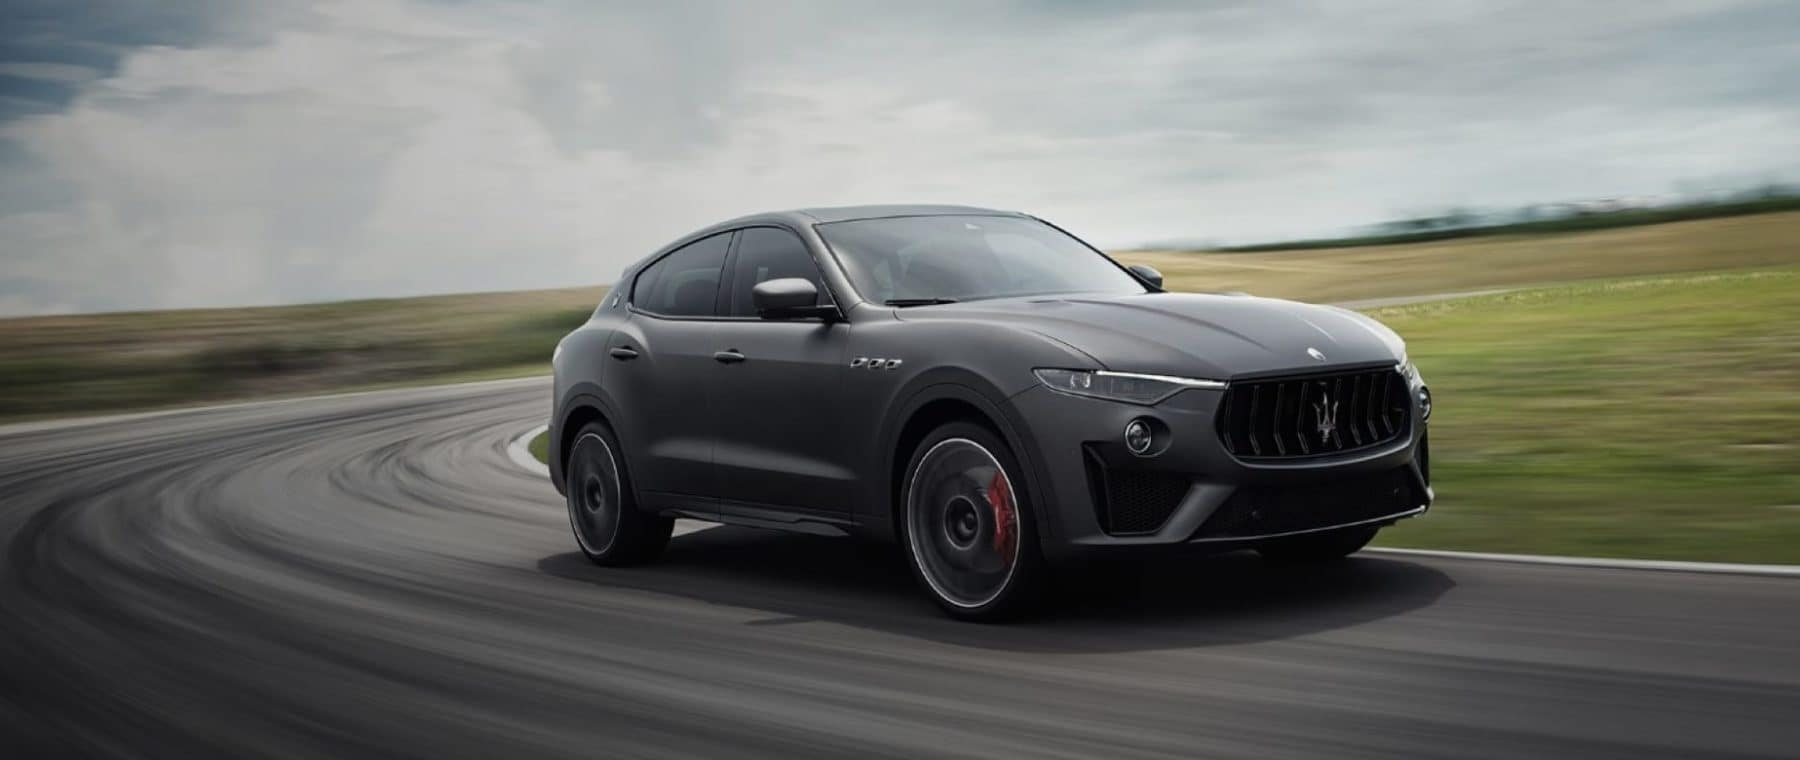 New Maserati SUV on Racetrack